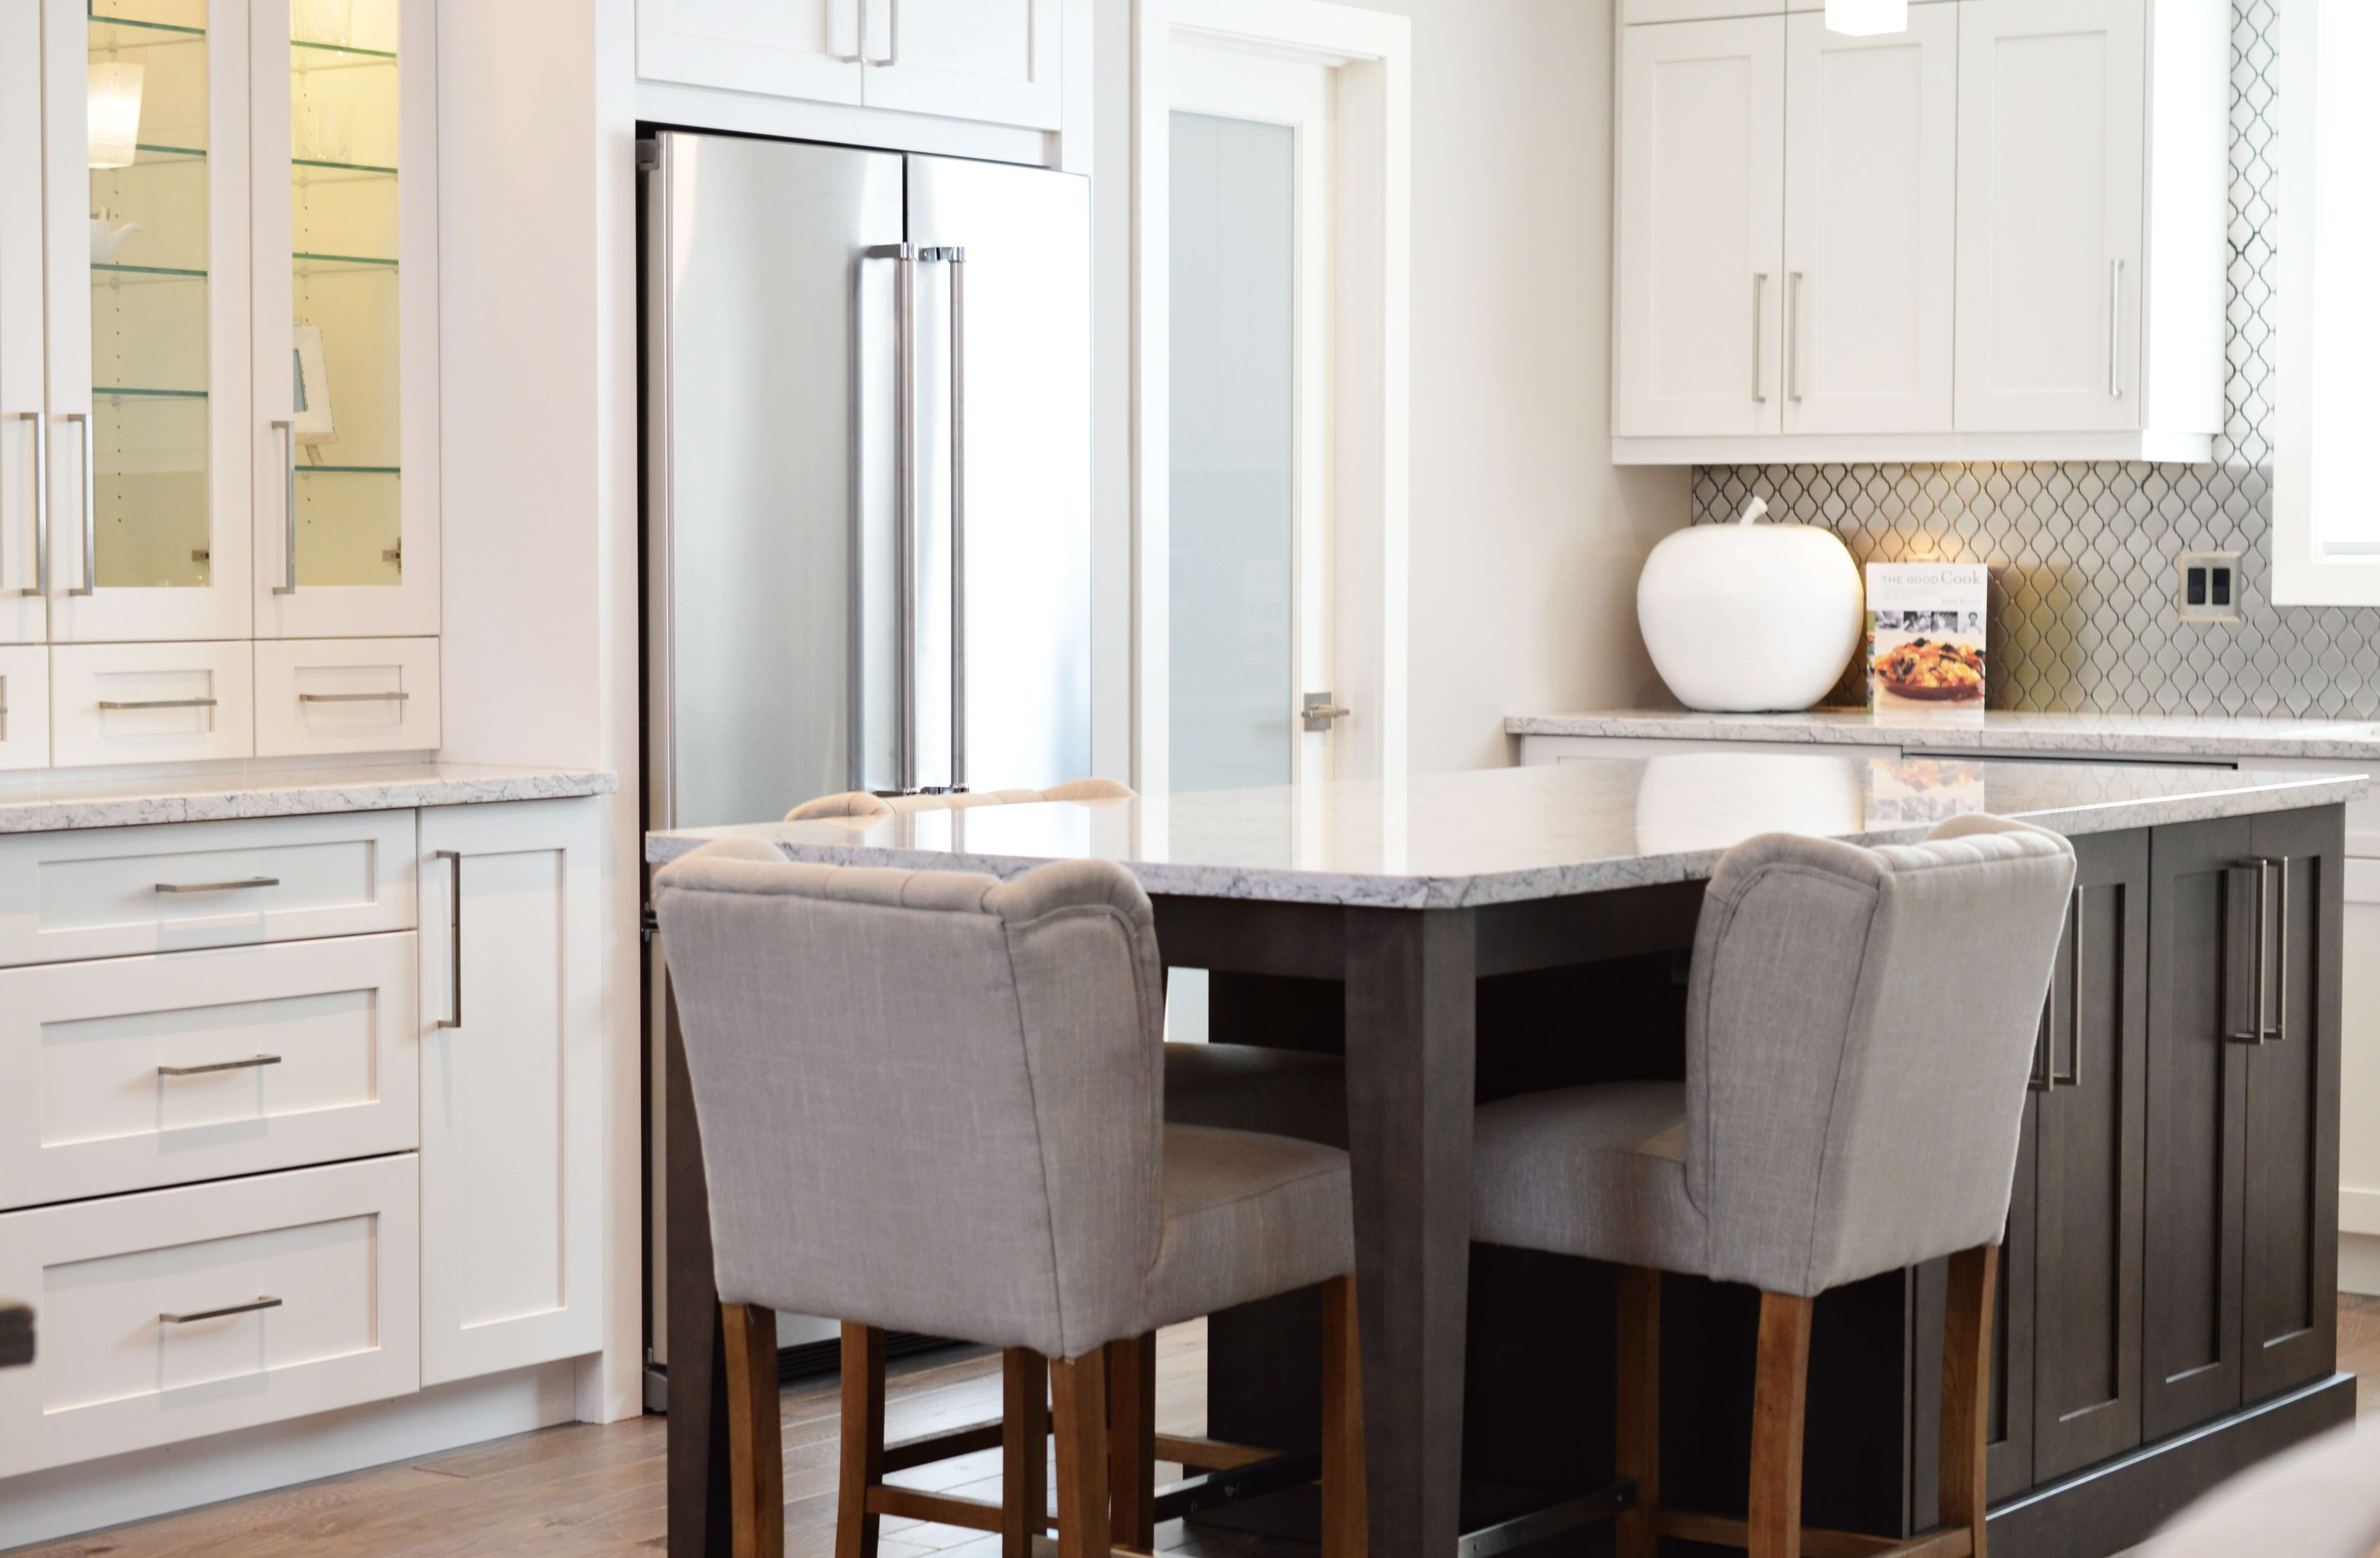 Learn More About Cabinet Restoration And Cabinet Painting